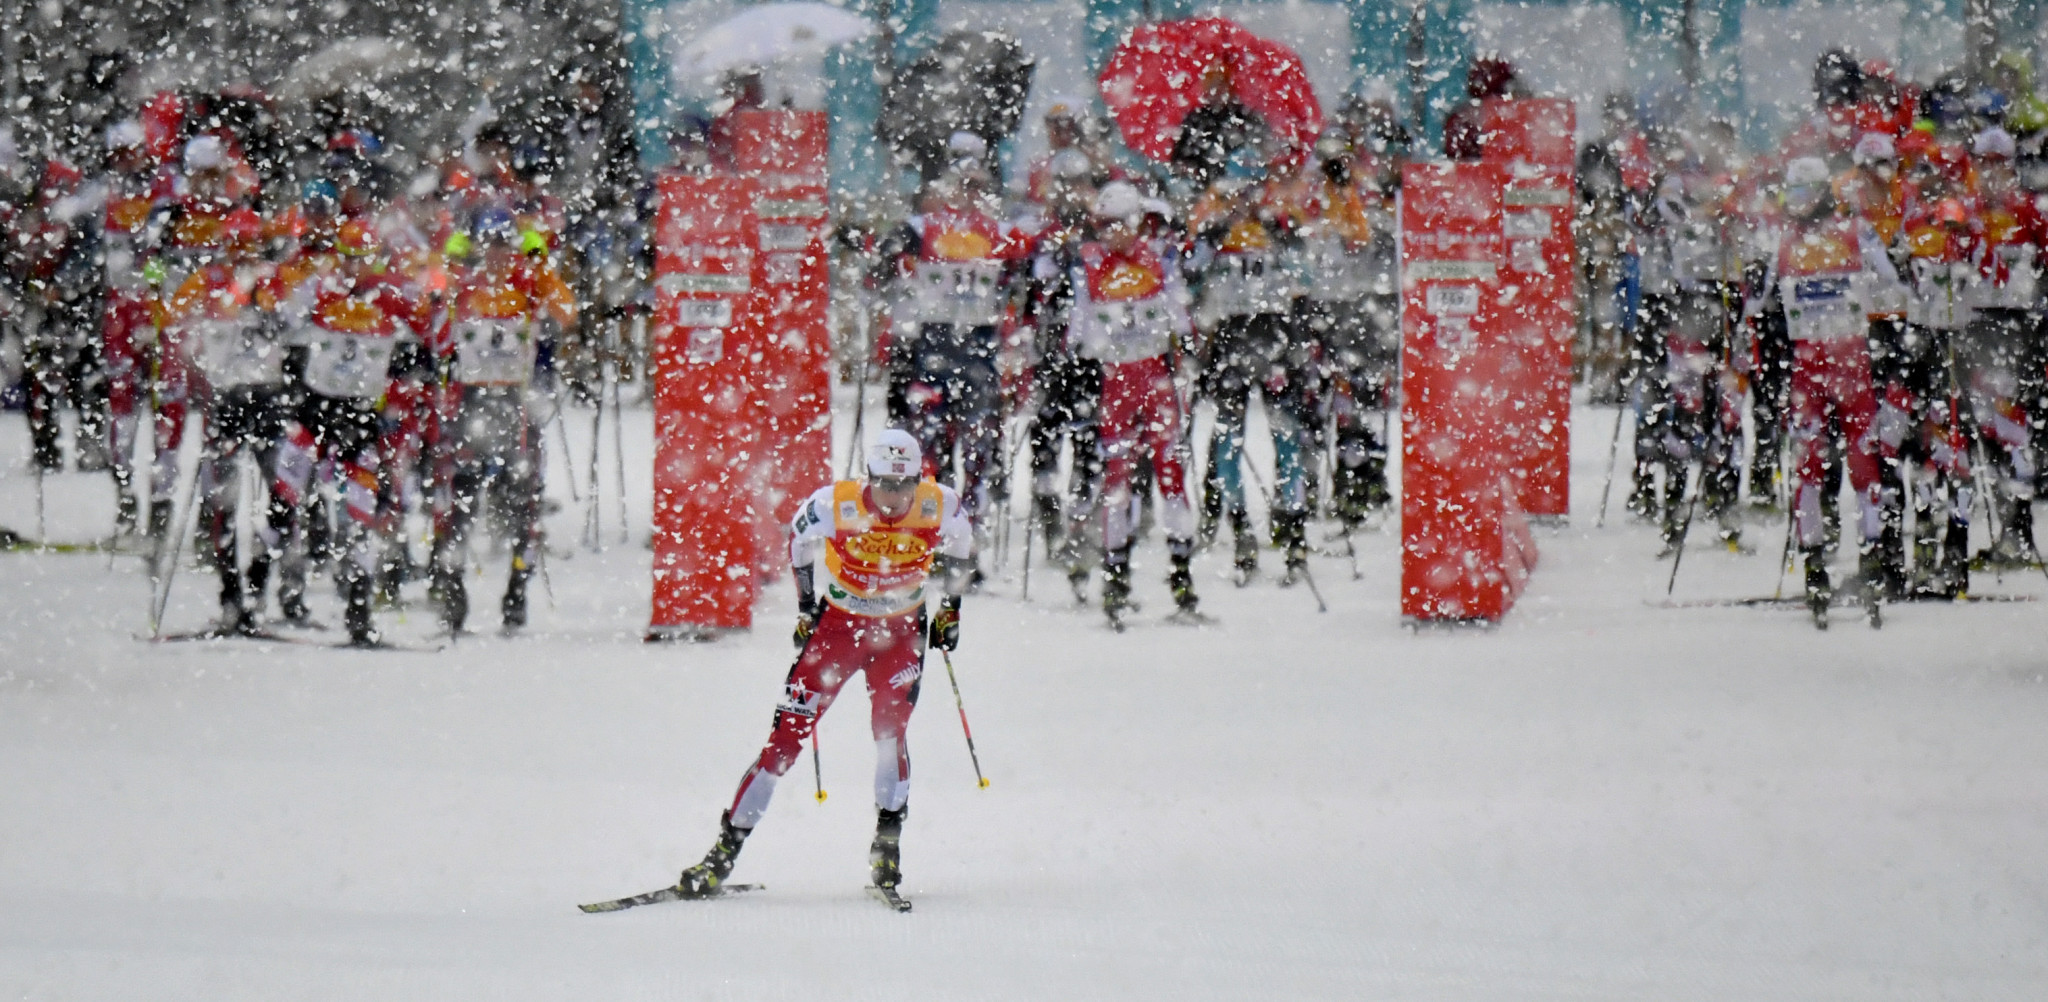 Riiber's unbeaten run at FIS Nordic Combined World Cup ends